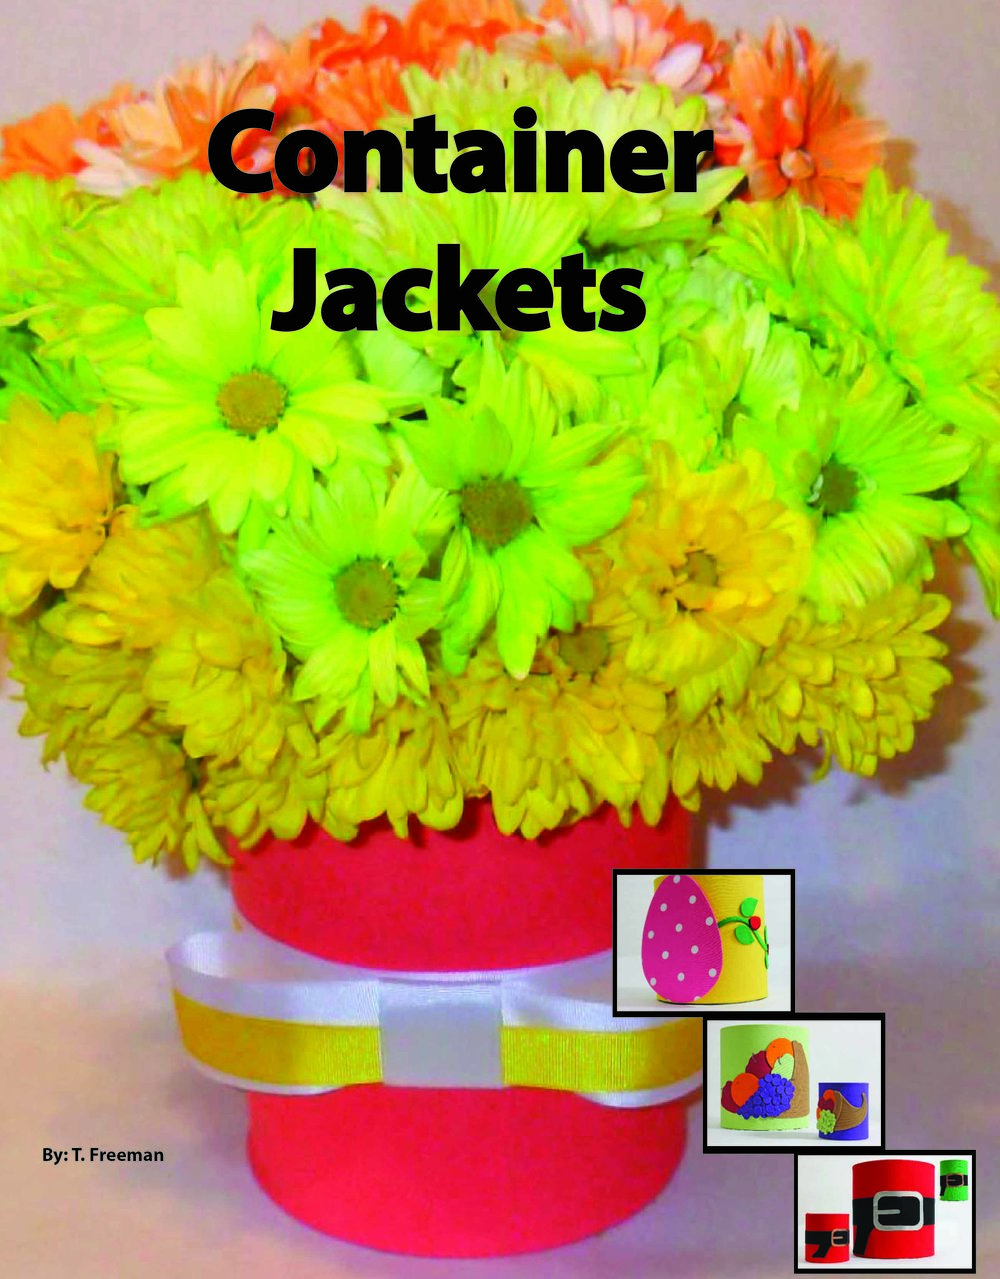 TracysQuiltsAndCrafts/ContainerJackets